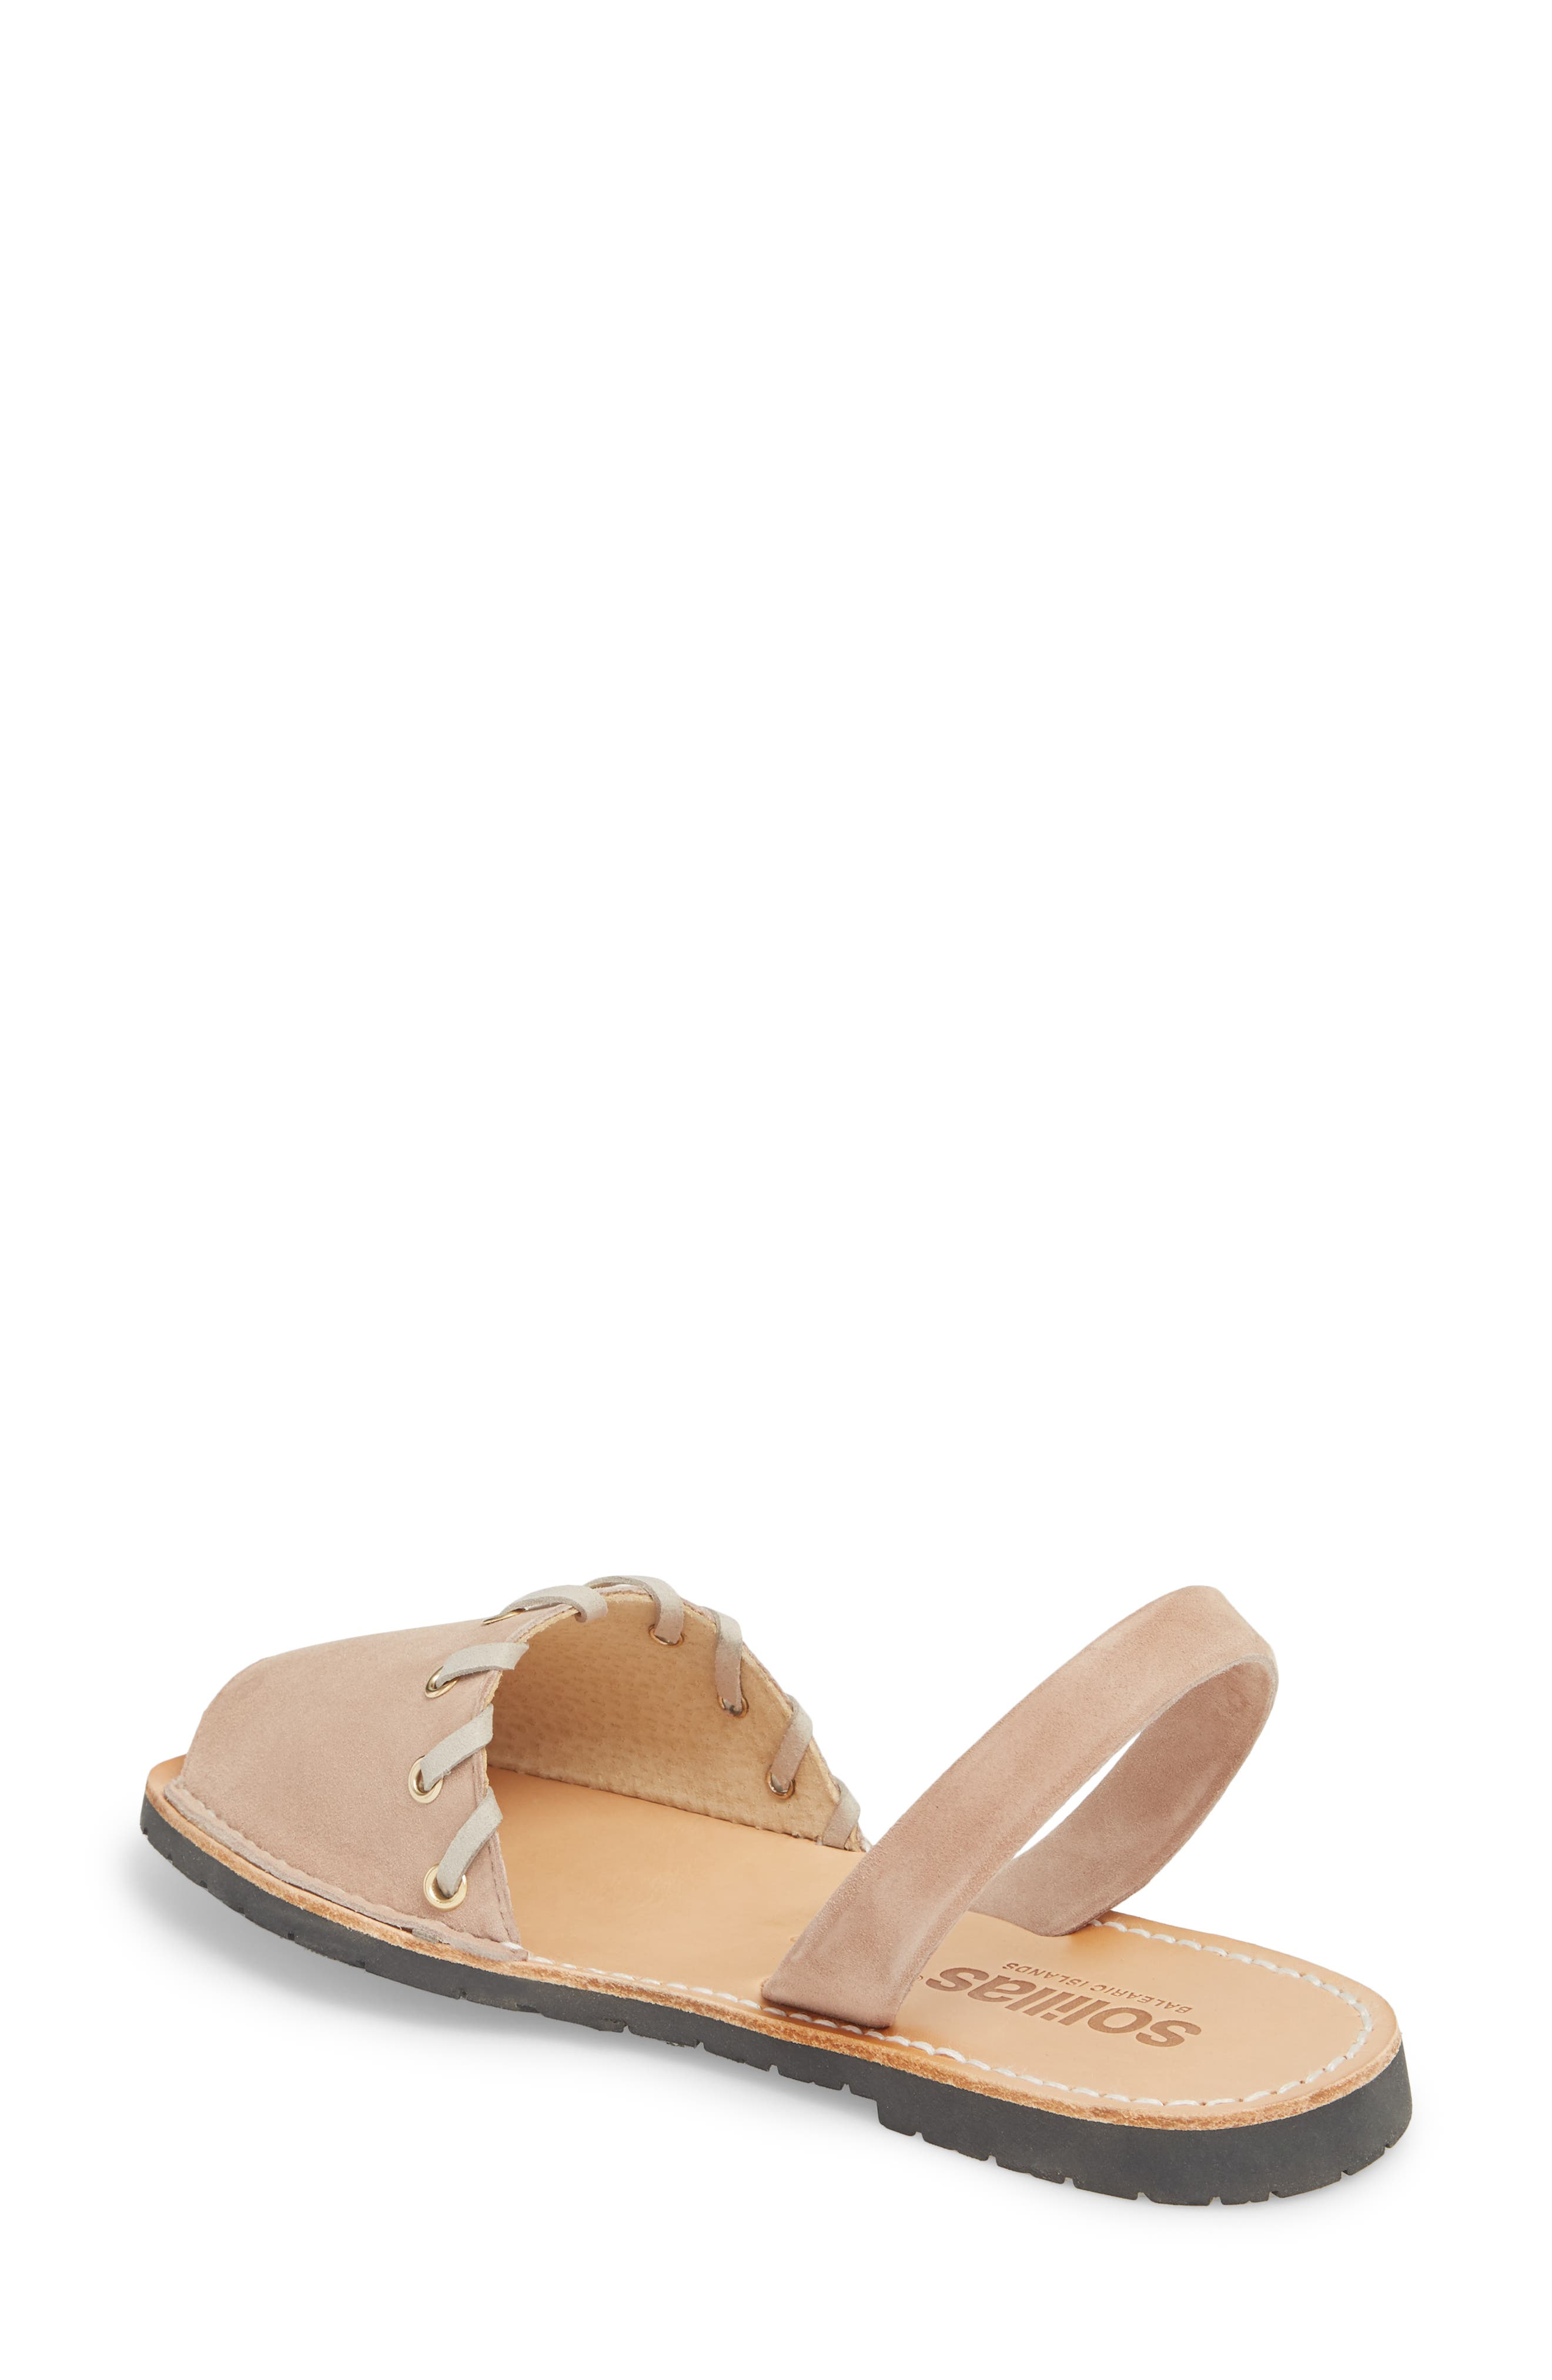 Whipstitched Flat Sandal,                             Alternate thumbnail 3, color,